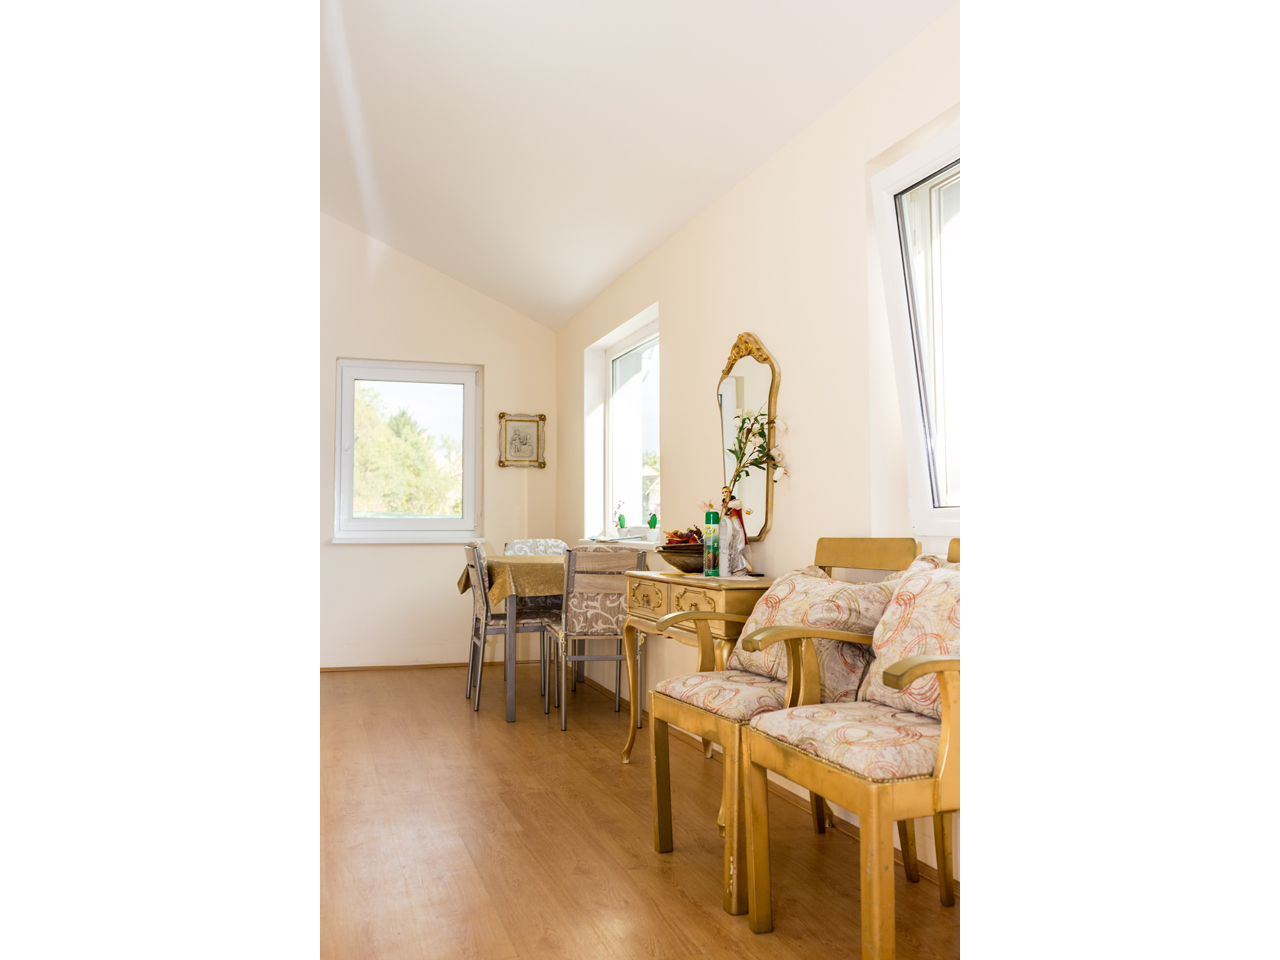 HOME FOR ELDERS AND OLD PEOPLE HOME STARCEVIC Adult care home Zrenjanin - Photo 8